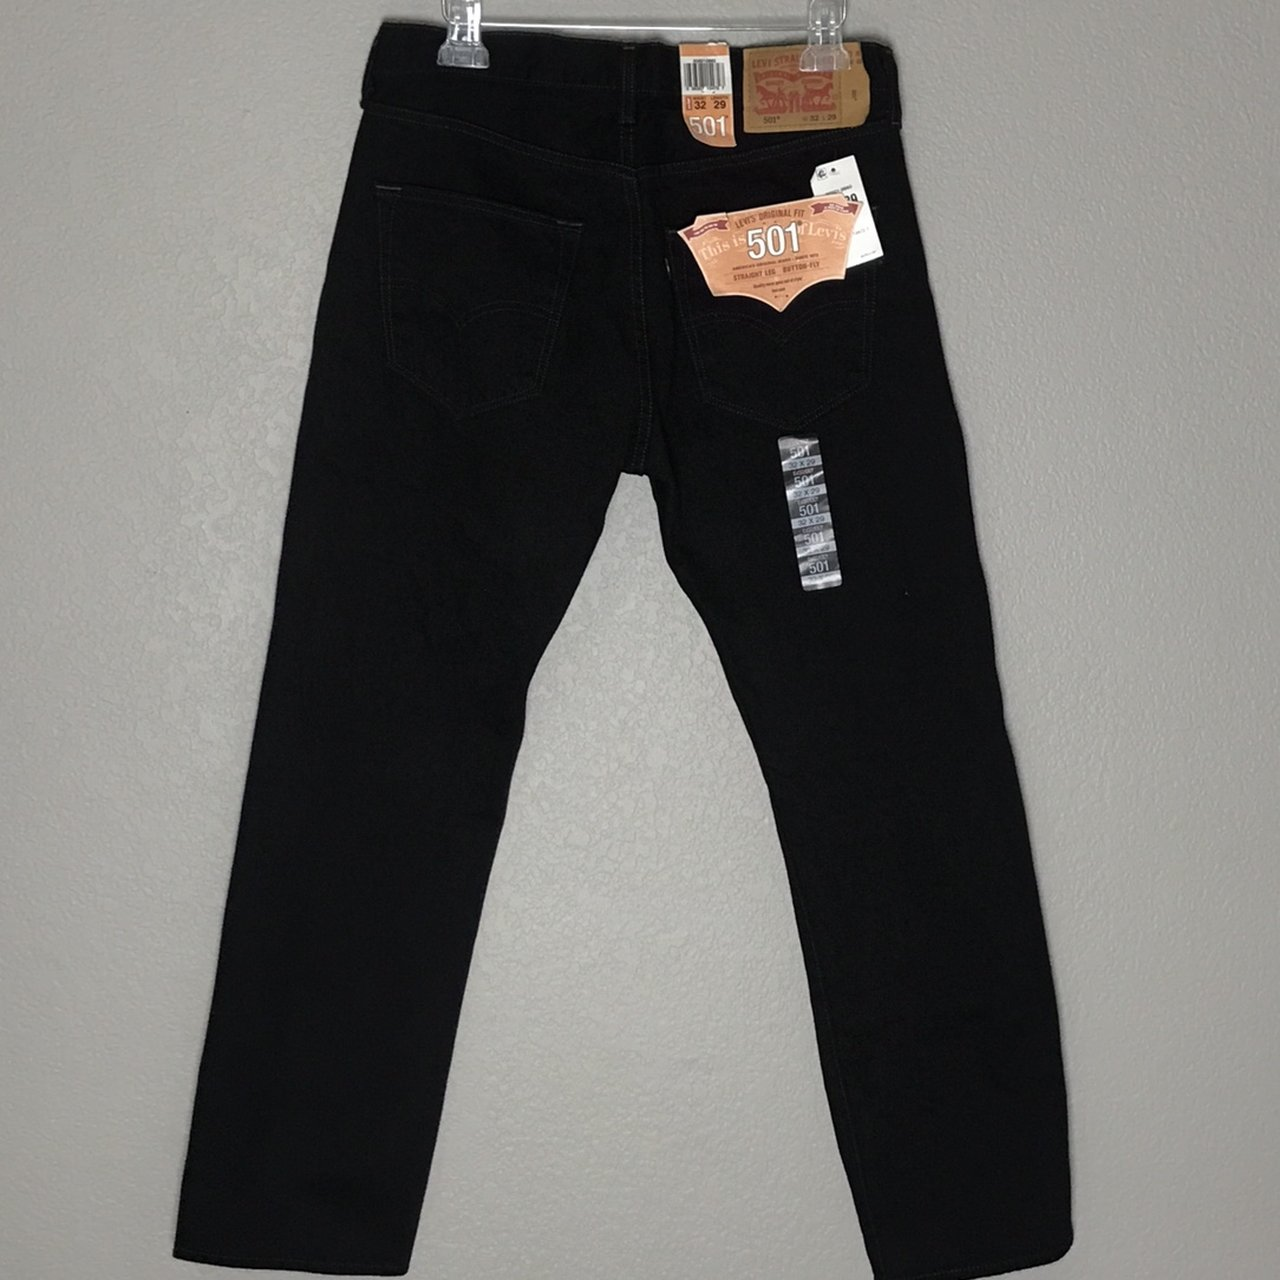 5f594be2 501 Jeans Black | Levi Strauss 550 Black Relaxed Fit Jeans